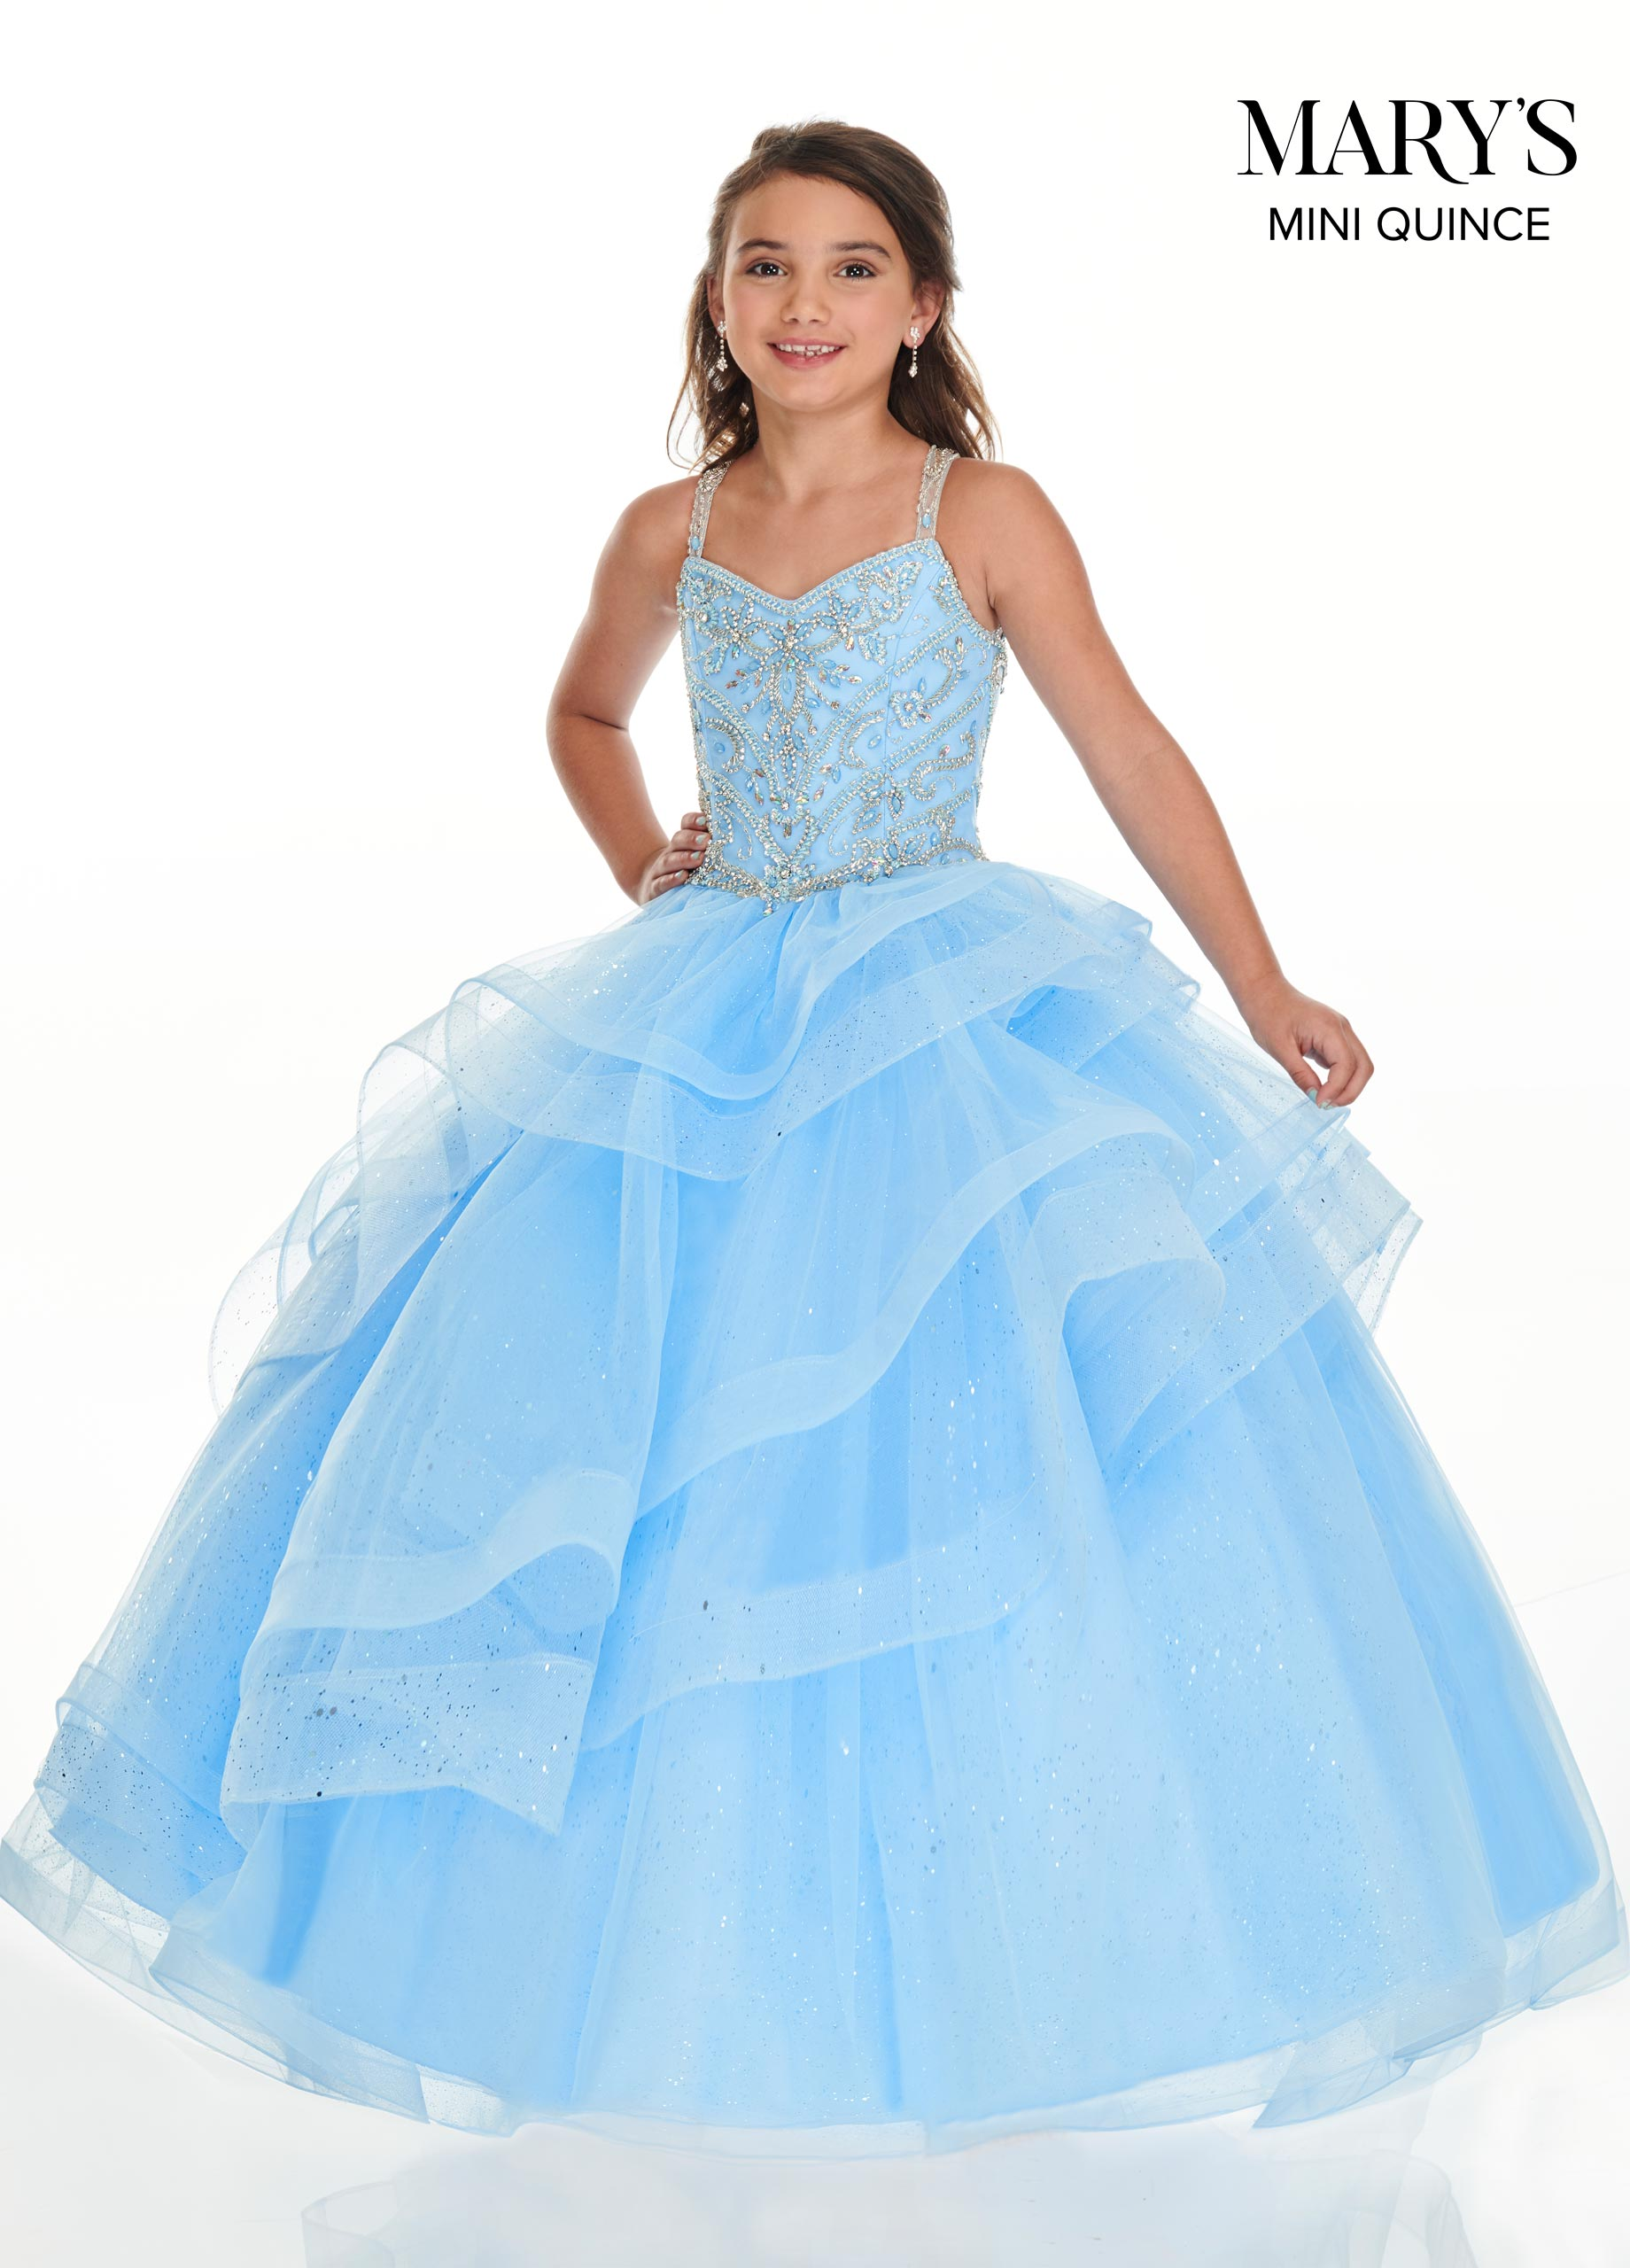 Little Quince Dresses | Mini Quince | Style - MQ4016